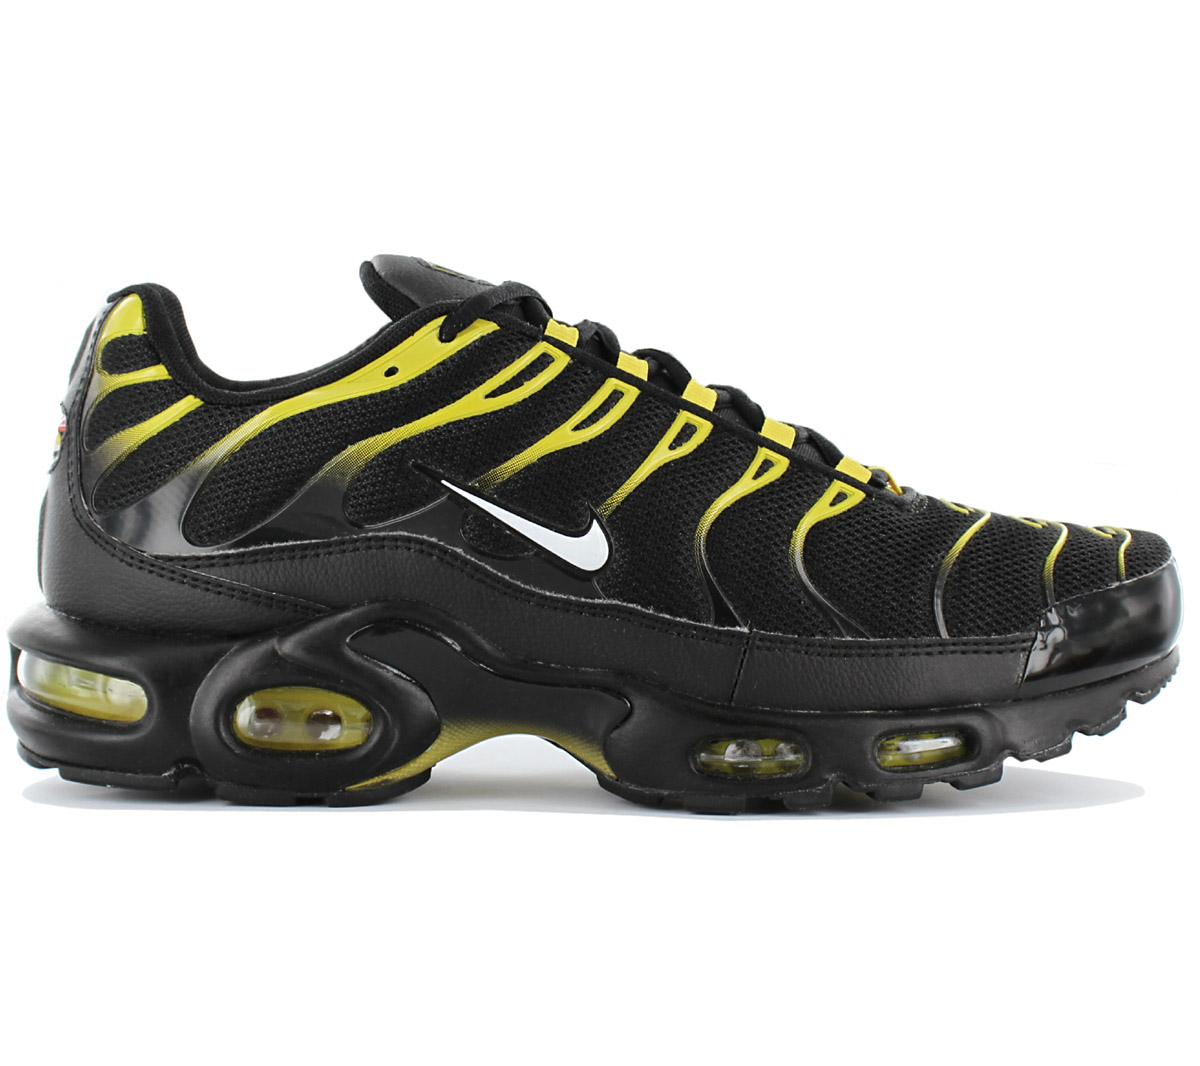 Nike-Air-Max-Men-039-s-Sneakers-Shoes-Sneakers-Classic-BW-90-1-95-Tavas-Command